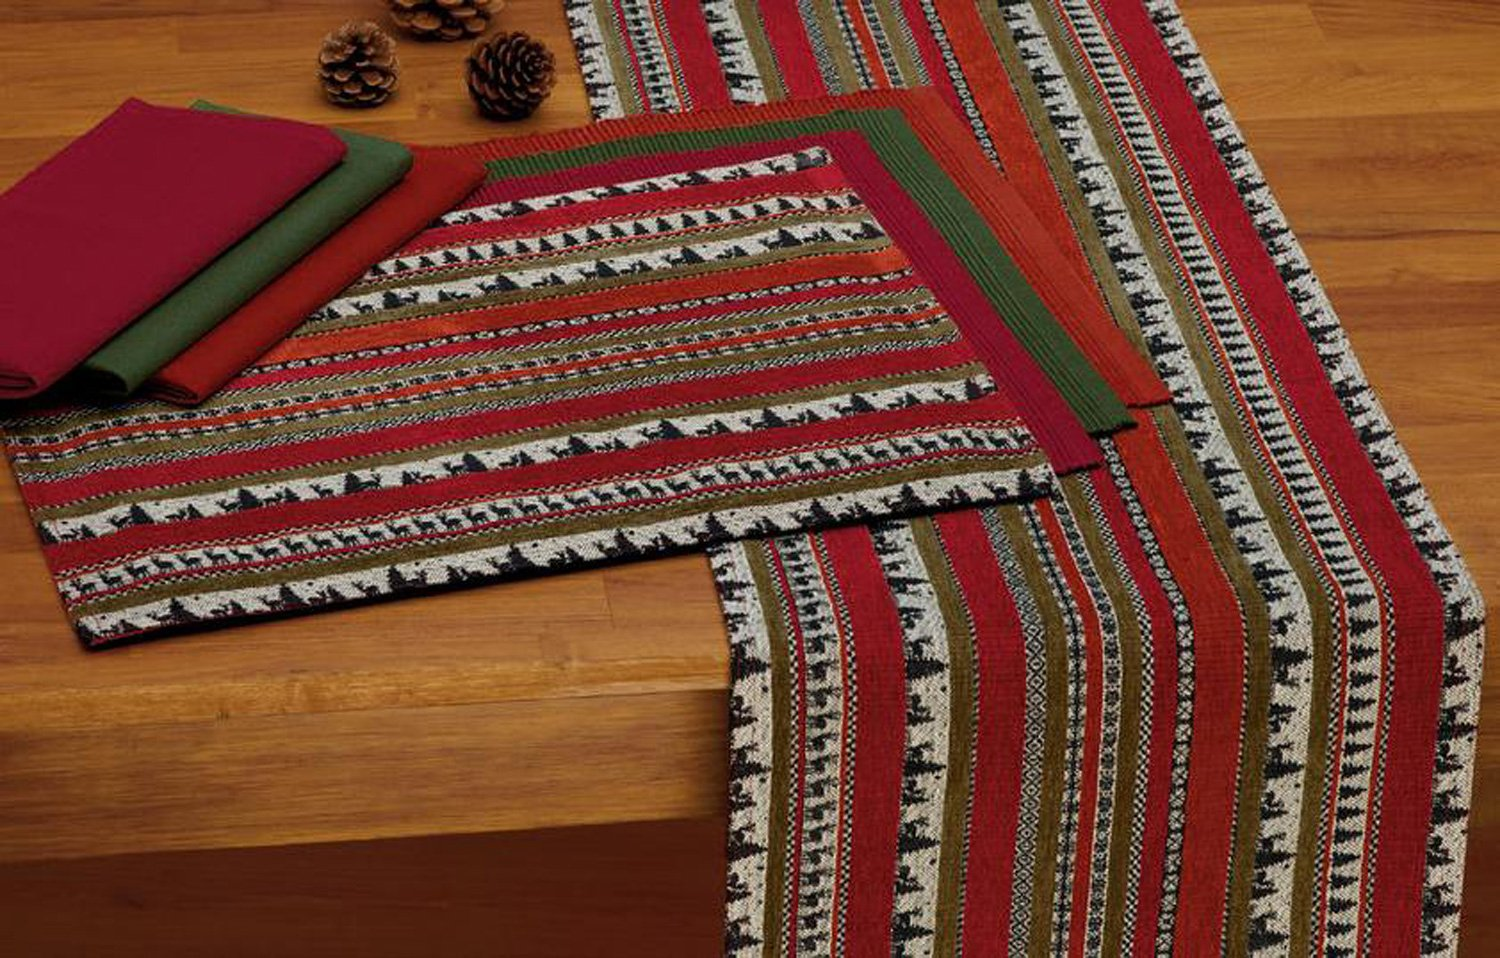 Design Imports A Walk in the Woods Table Linens, 20-Inch by 20-Inch Napkin, Picante by Design Imports (Image #2)